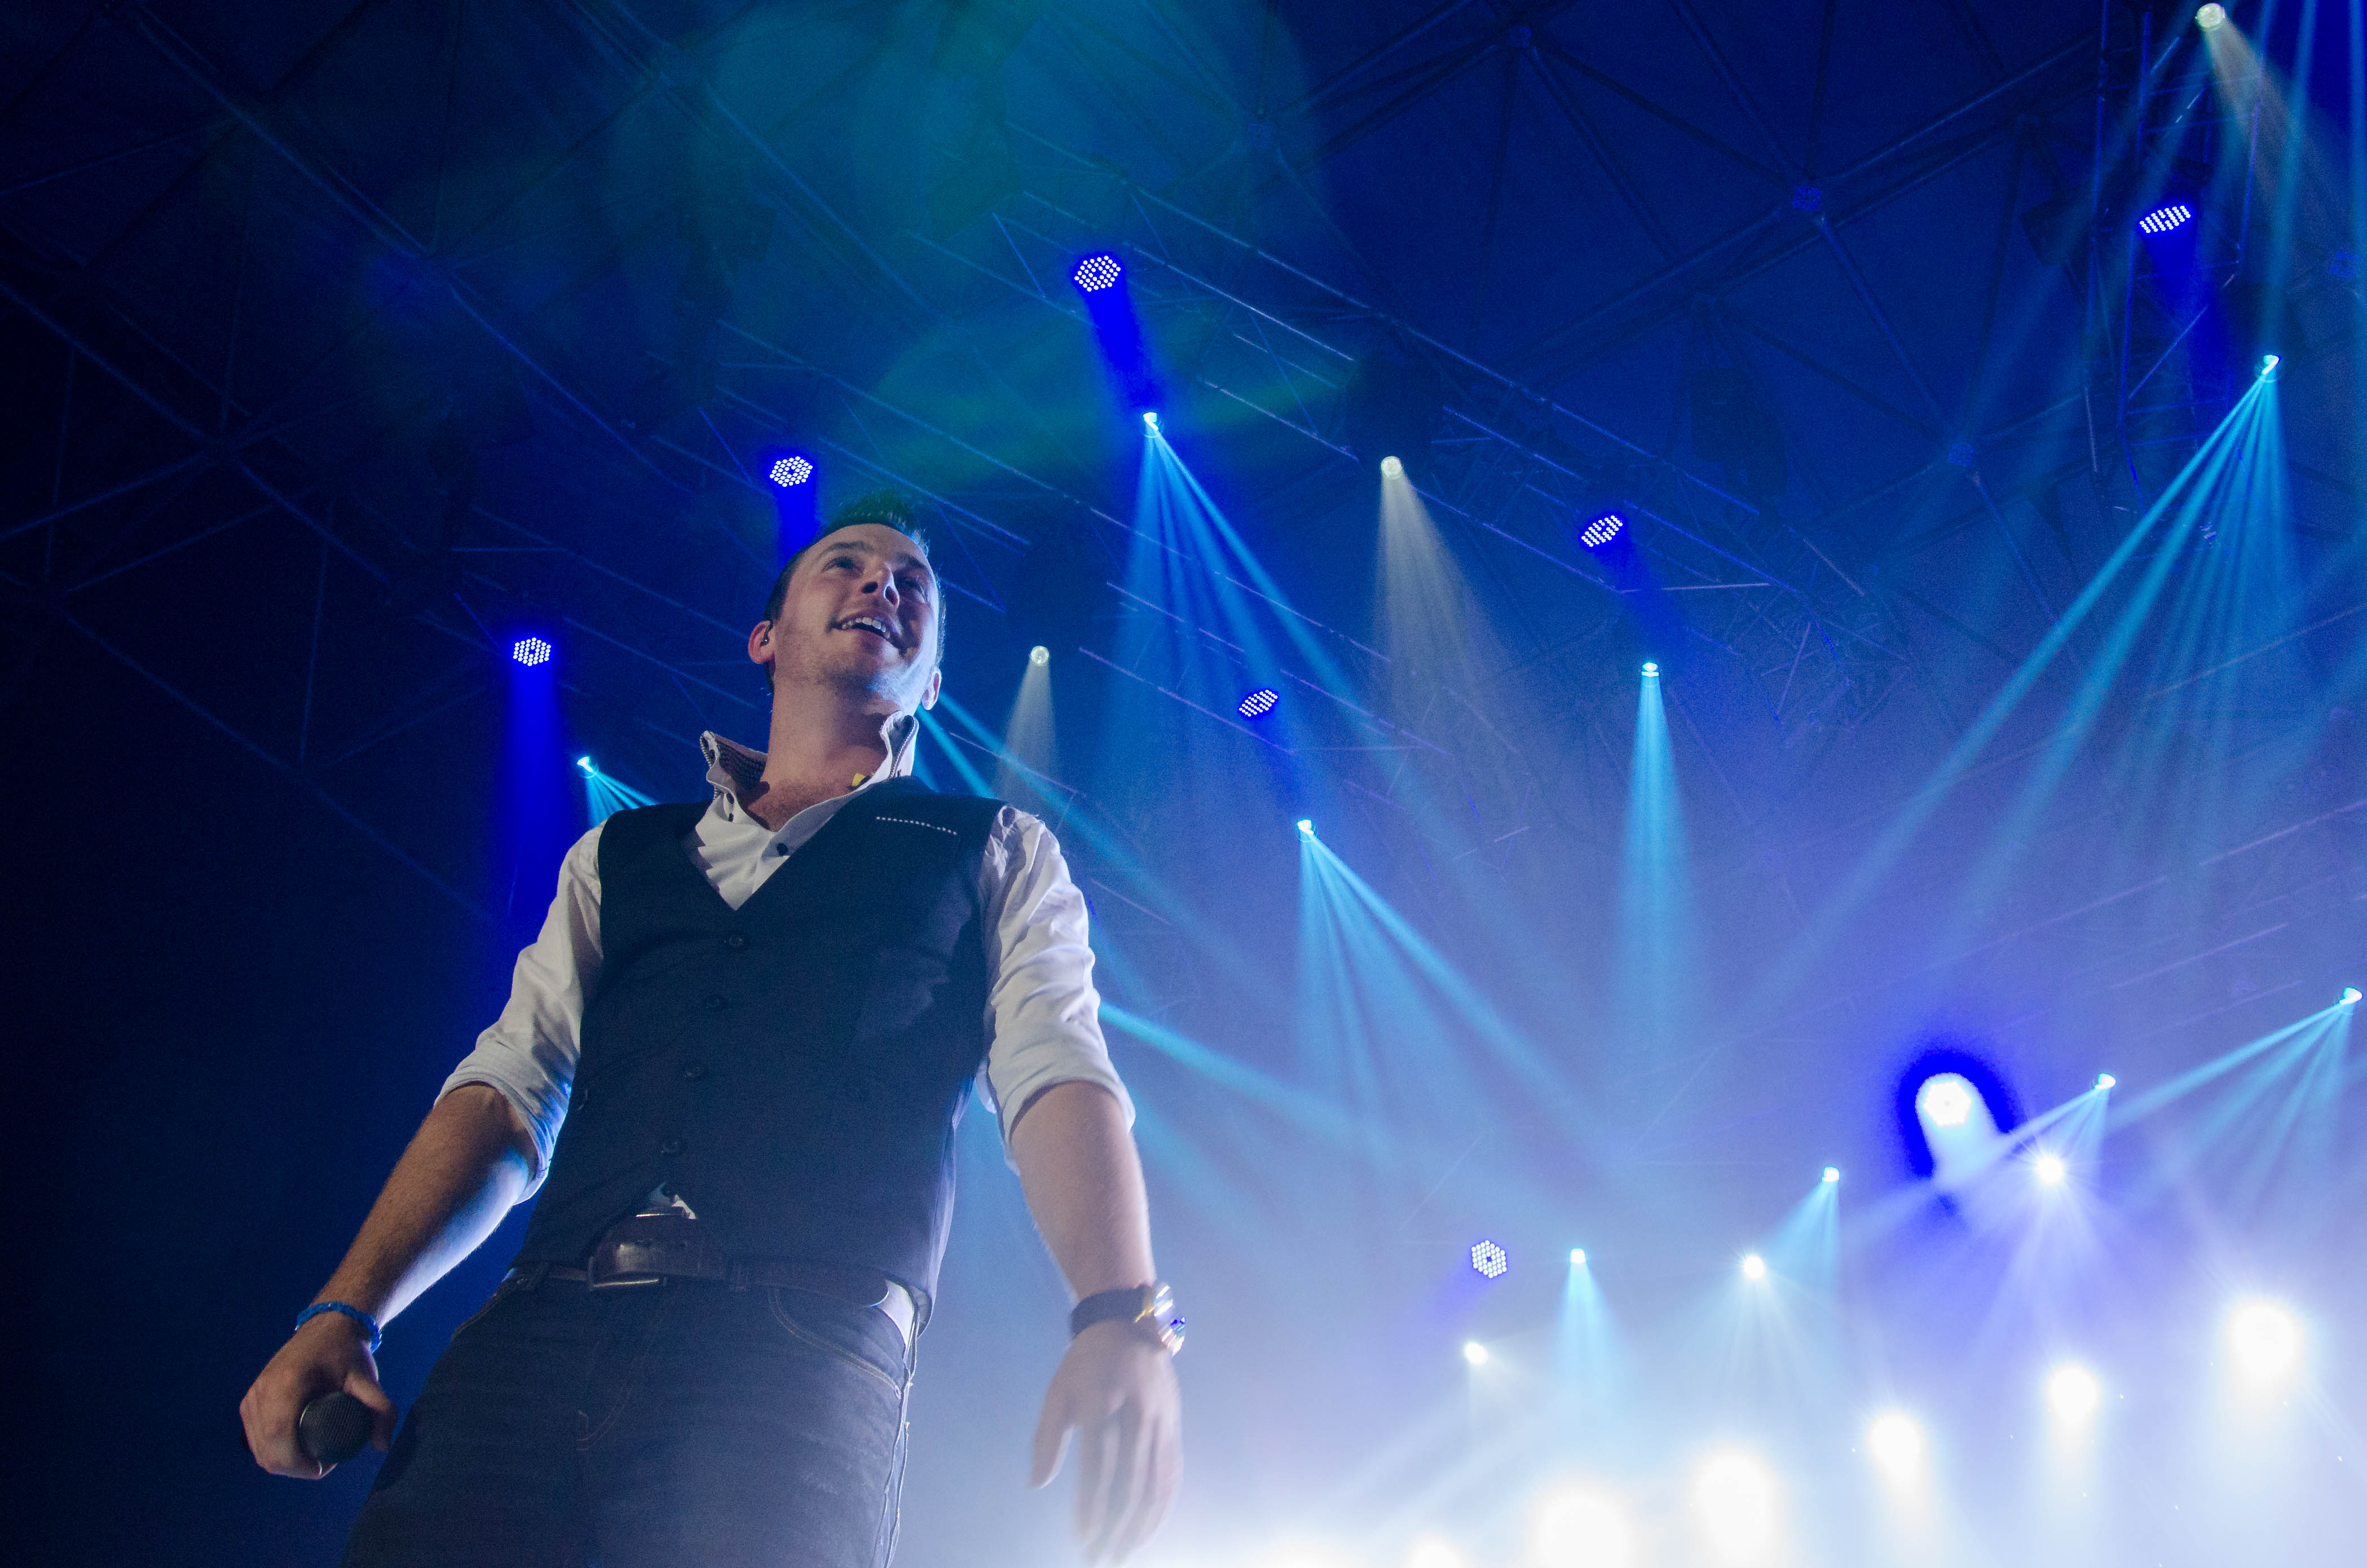 nathan-carter-at-the-marquee-cork-by-sean-smyth-15-6-14-41-of-55